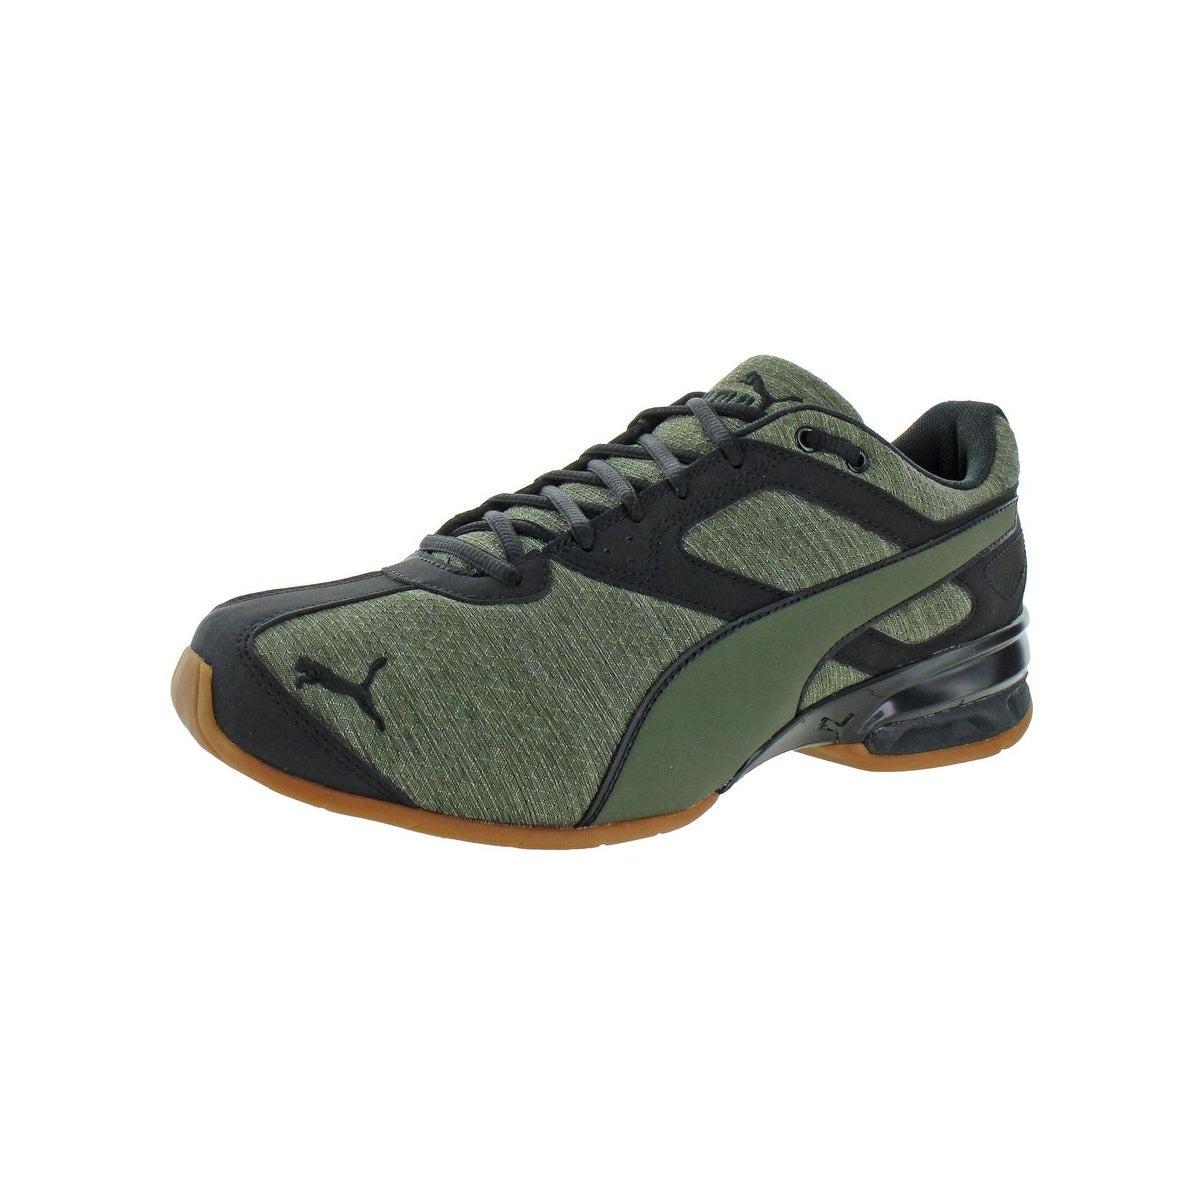 PUMA Tazon 6 Heather Rip Men's Sneakers Men Shoe Running